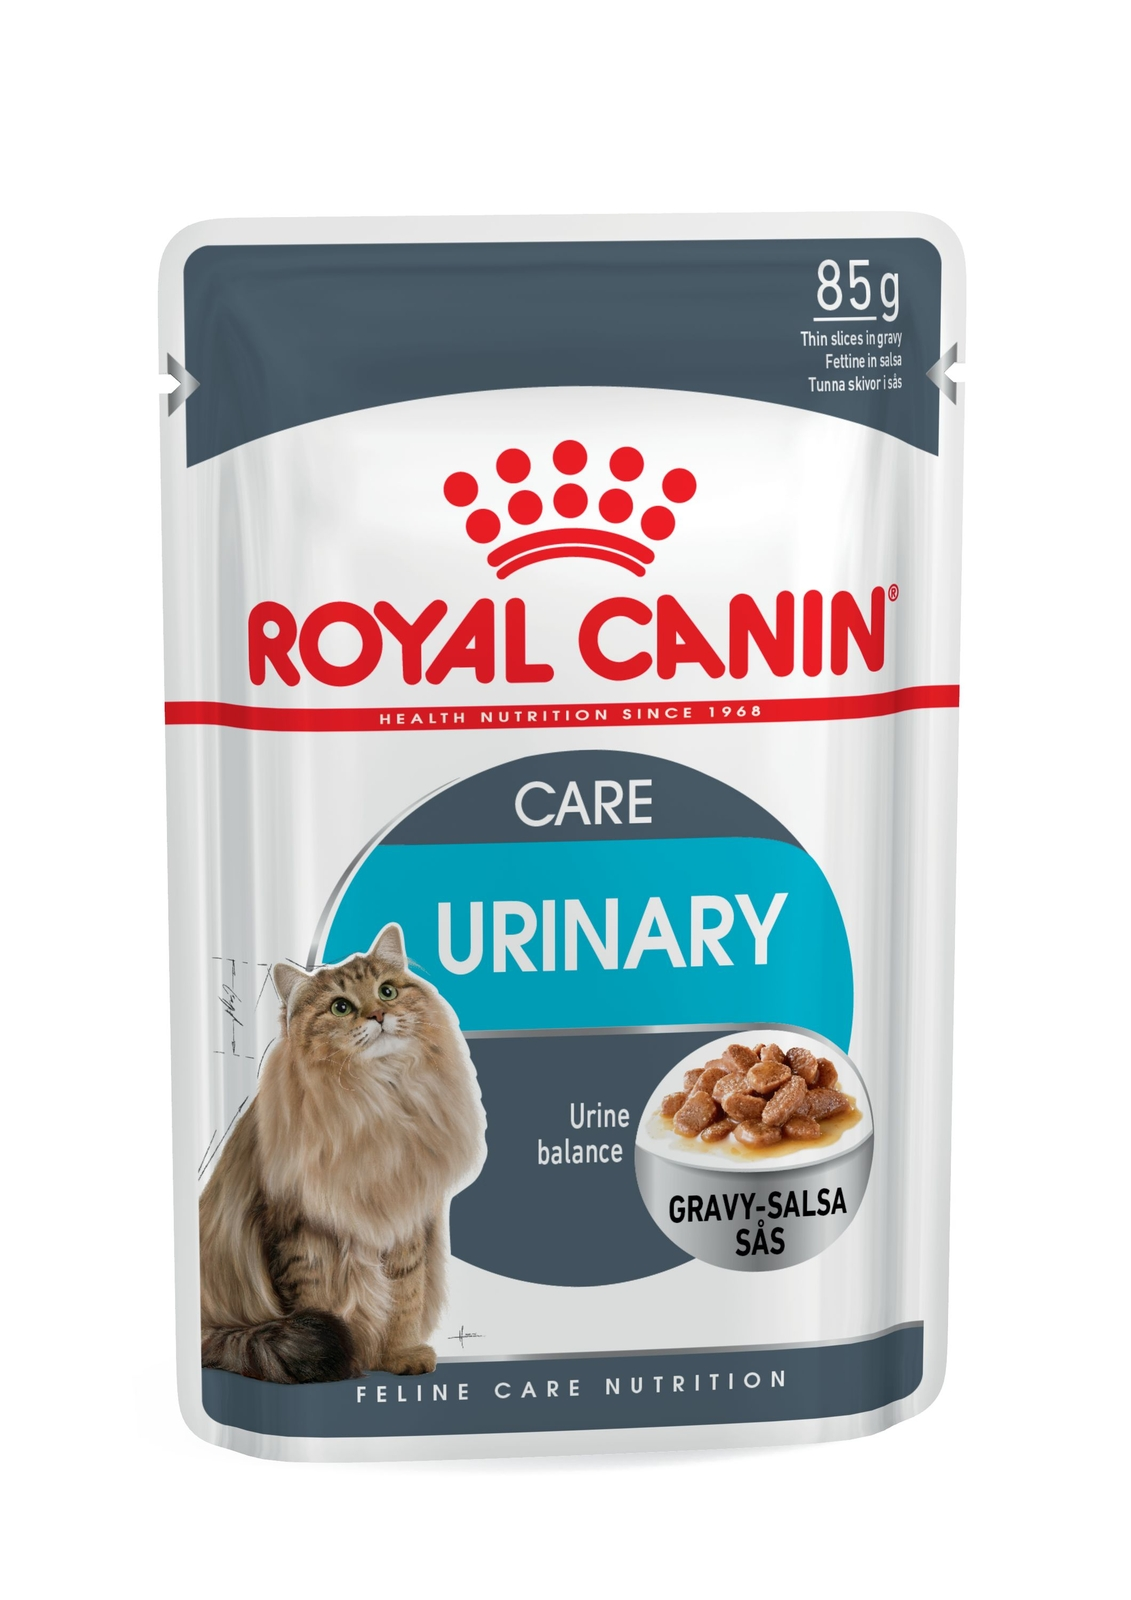 Royal Canin Urinary Care Cat Food Pouch - Ofypets